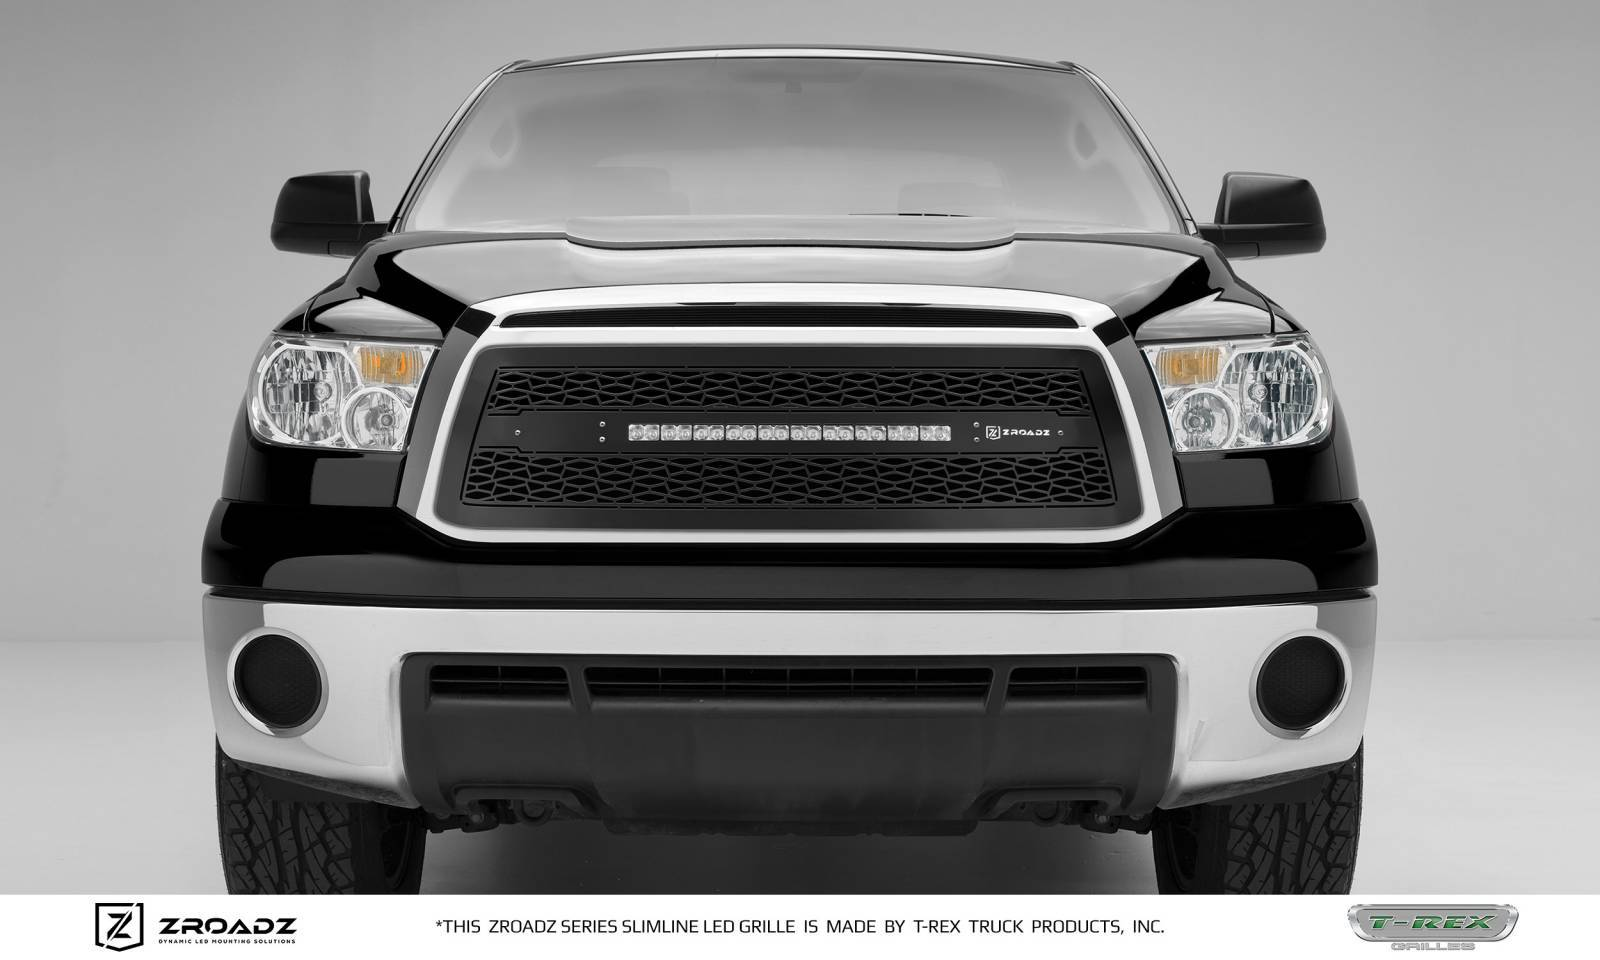 T-REX Grilles - Toyota Tundra - ZROADZ Series - Main Insert - Grille w/ One 20 Inch Slim Line Single Row LED Light Bar - Part# Z319631